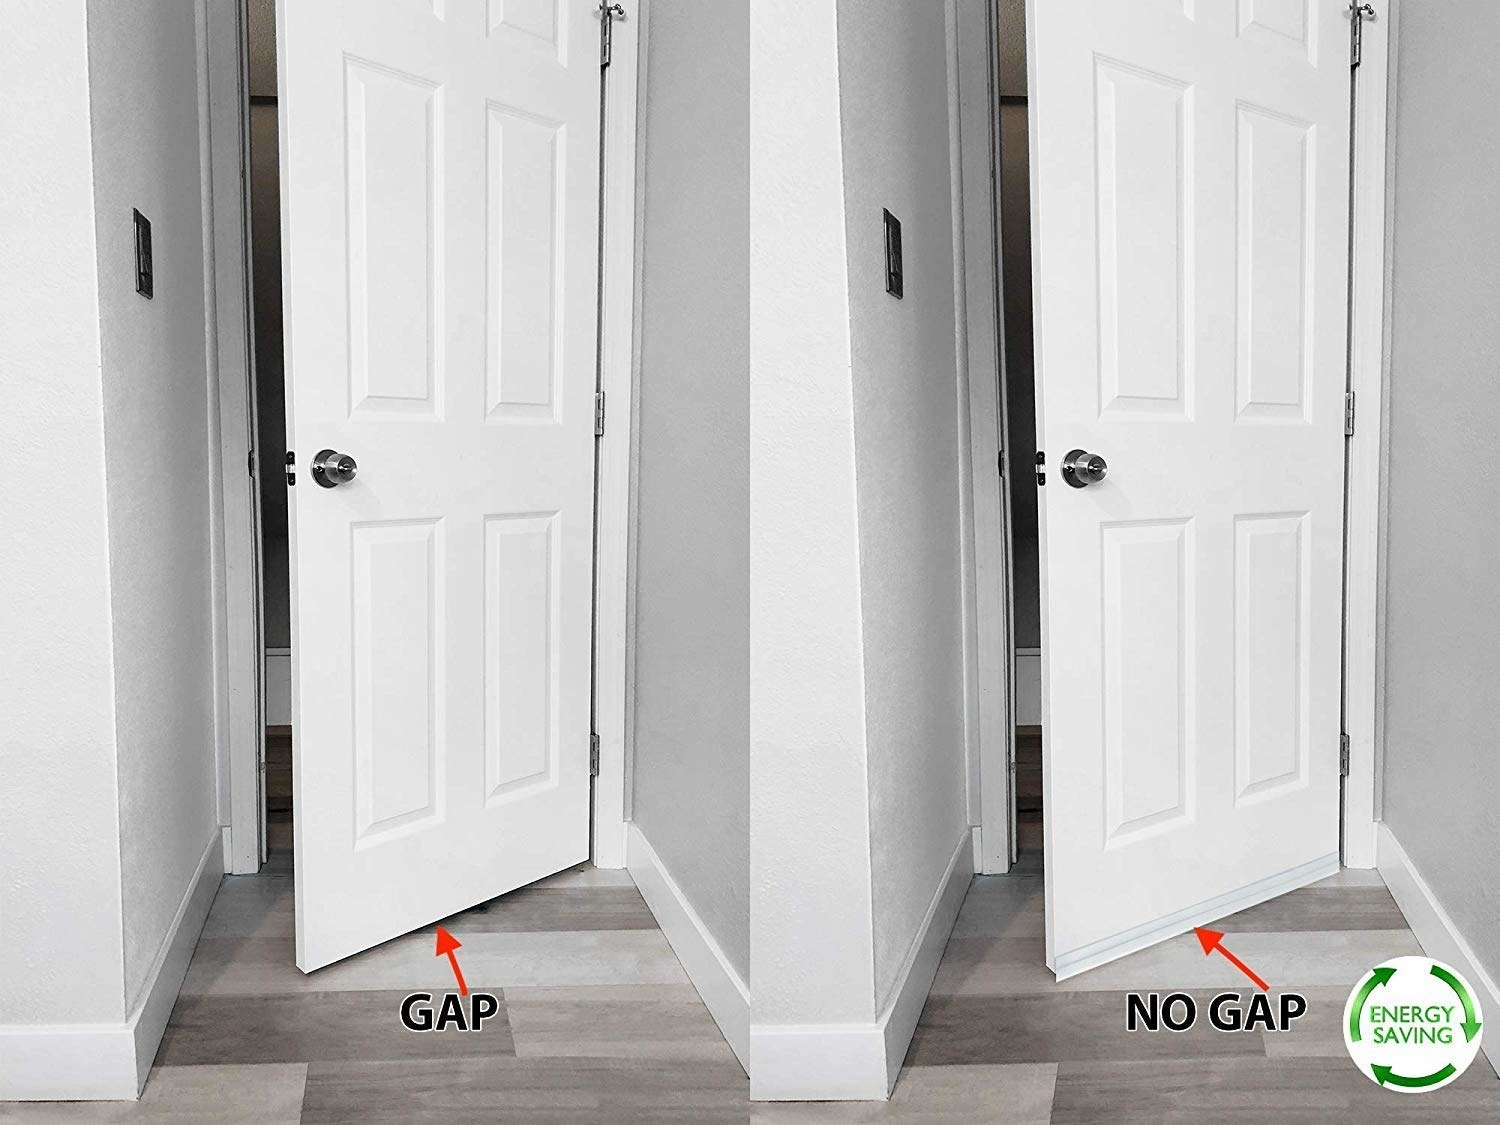 A before image showing space underneath an open door and an after image of a long strip covering the gap between the door and the floor